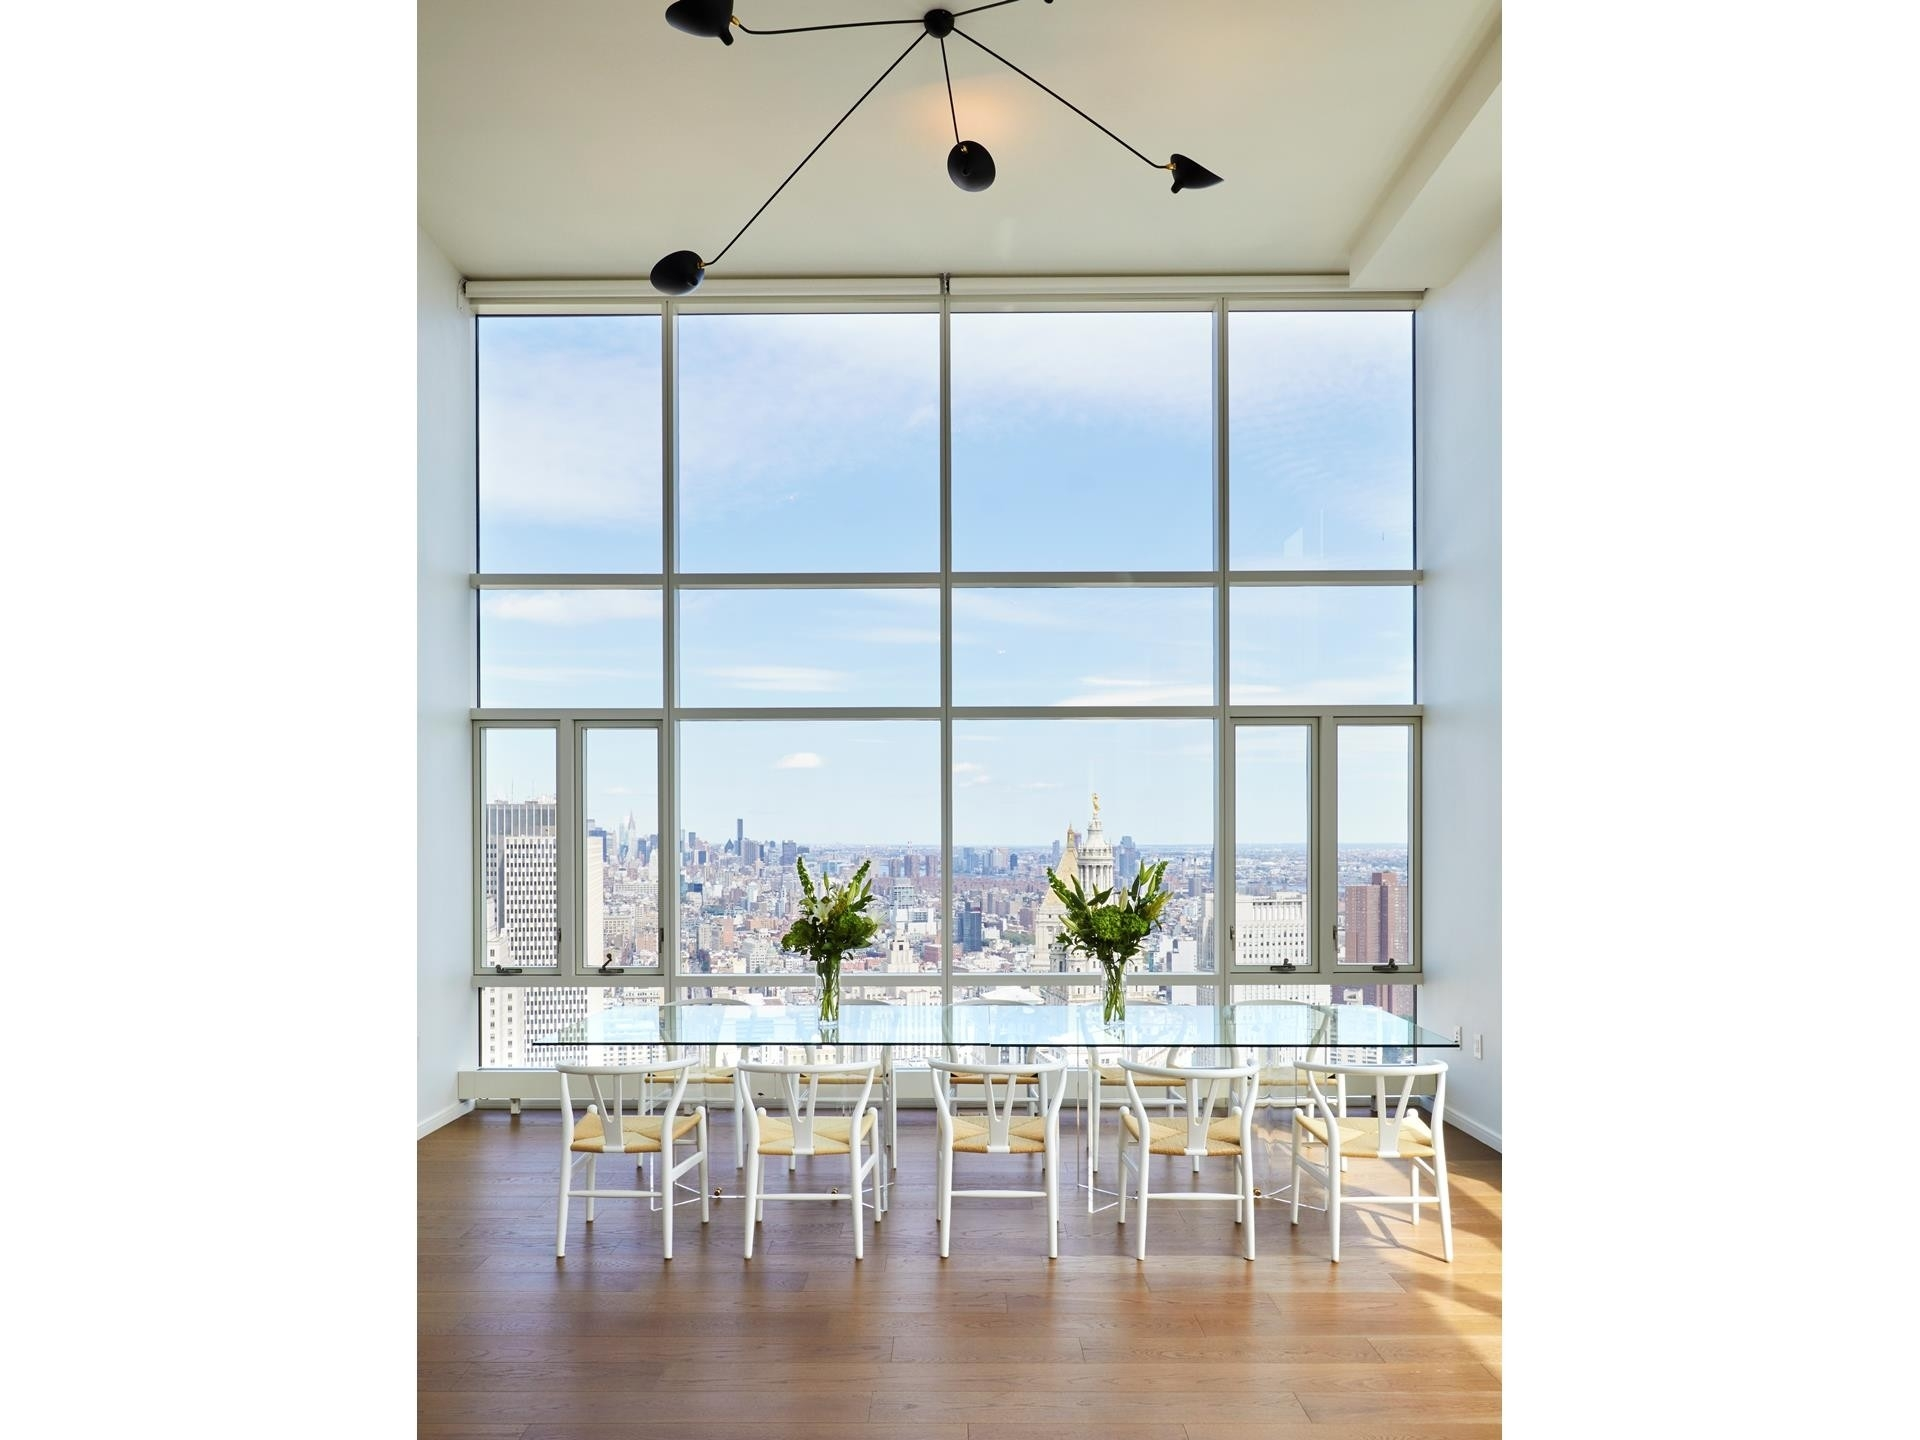 8. Condominiums for Sale at The Beekman Residences, 5 Beekman St, PH Financial District, New York, NY 10038